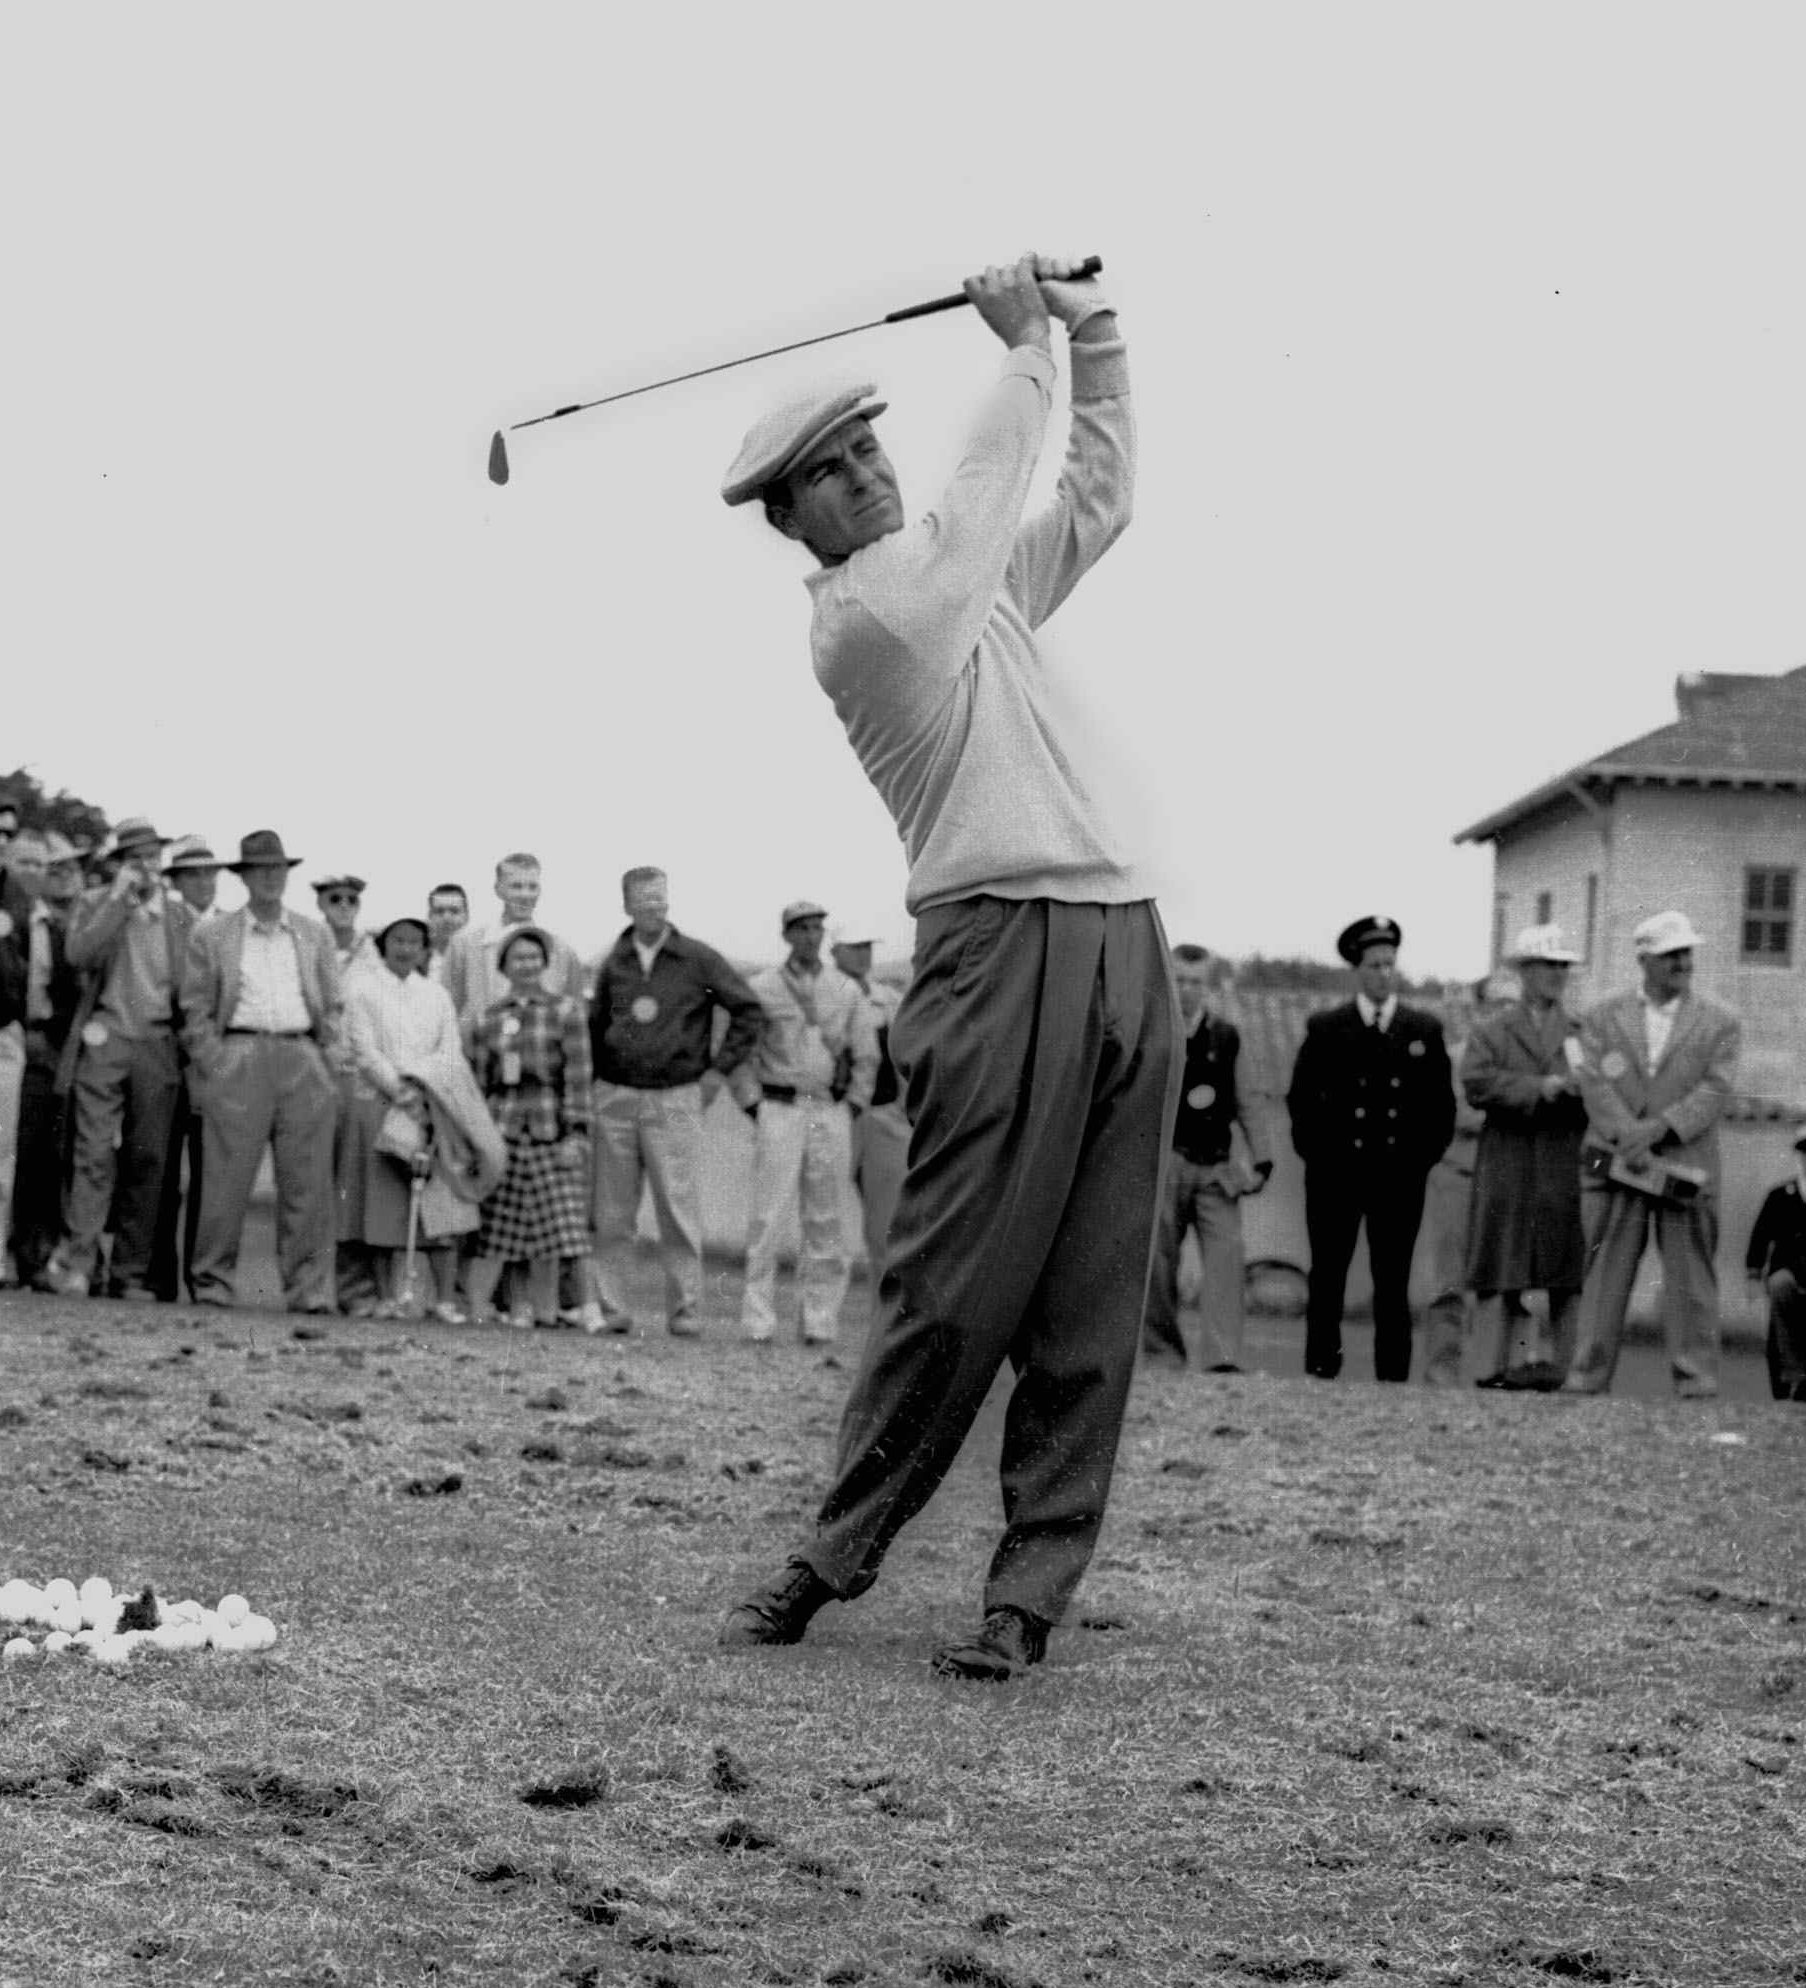 FILE - In this June 17, 1955, file photo, Jack Fleck warms up before a playoff with Ben Hogan for the U.S. Open golf tournament title in San Francisco. That year's tournament is best known for how unheralded Fleck took down Ben Hogan in one of golf's grea